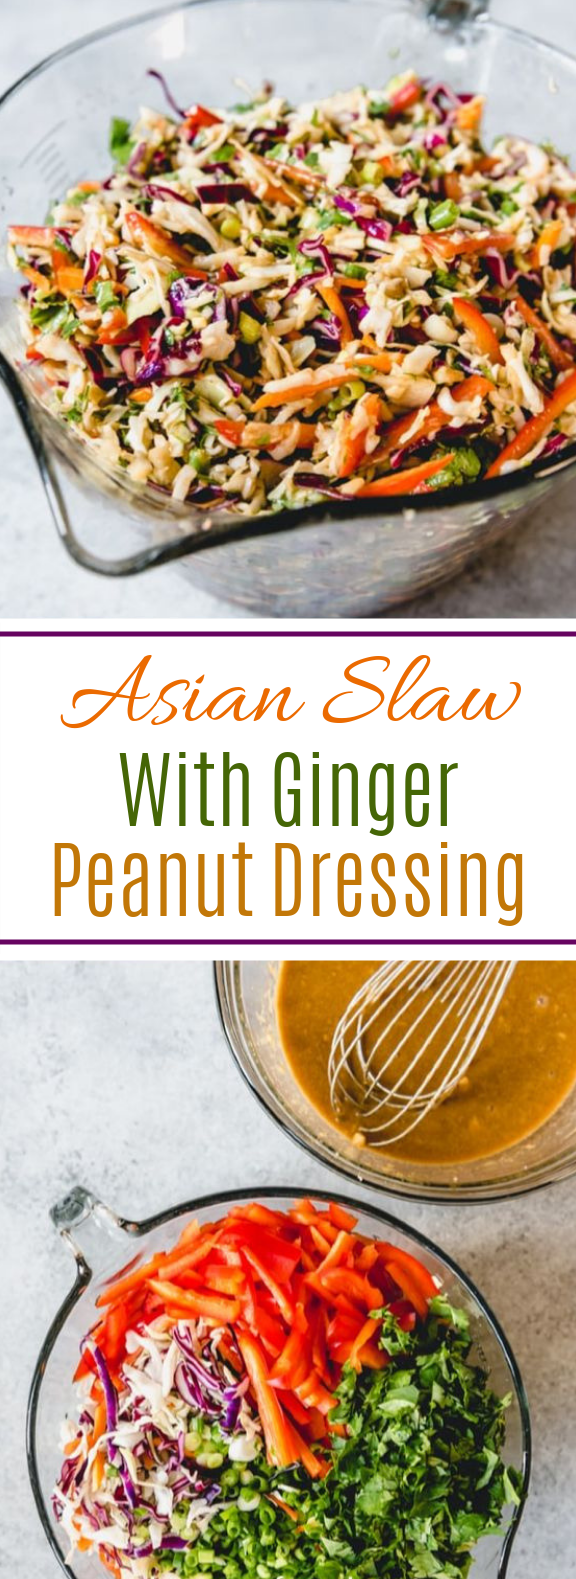 Asian Slaw with Ginger Peanut Dressing #vegetarian #sidedish